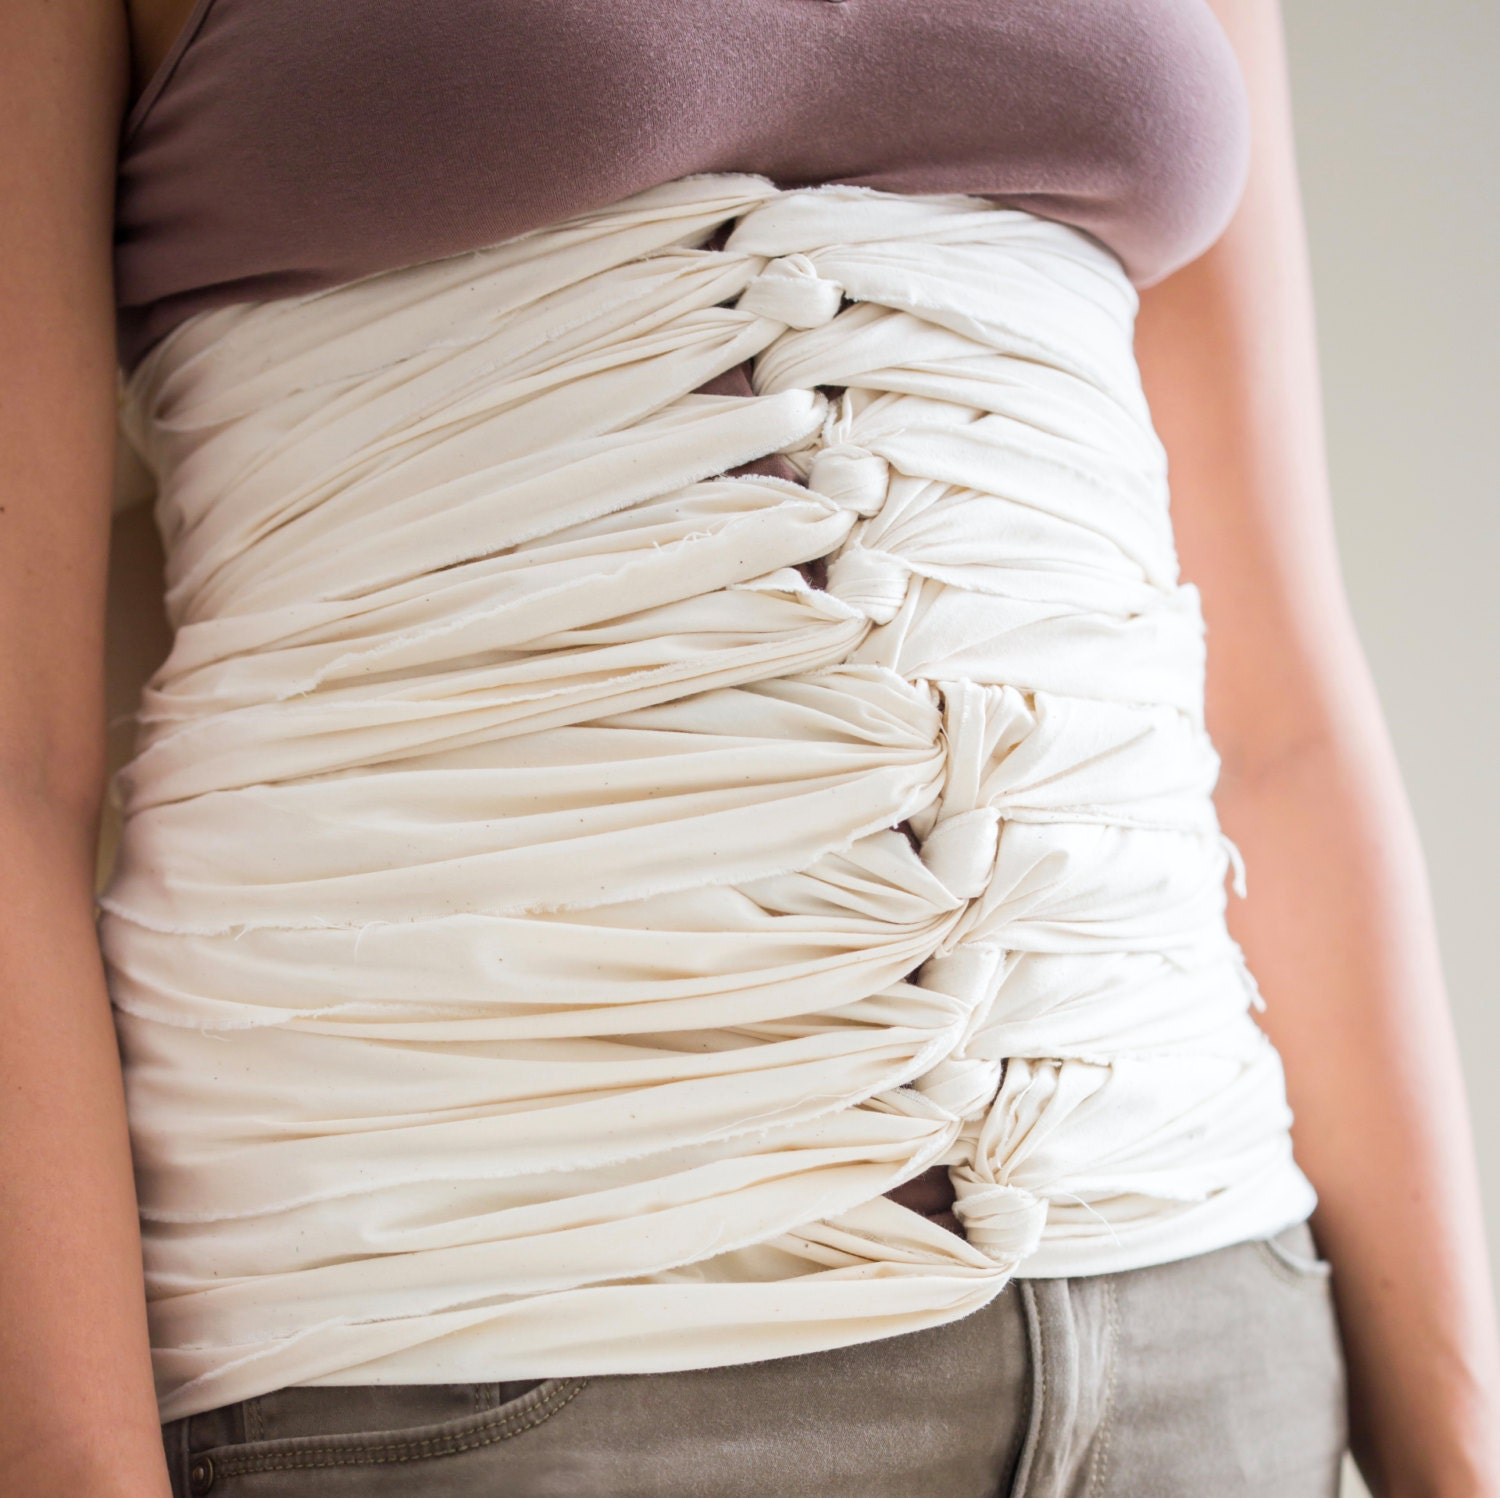 Bengkung Belly Bind/ Postpartum Belly Wrap From